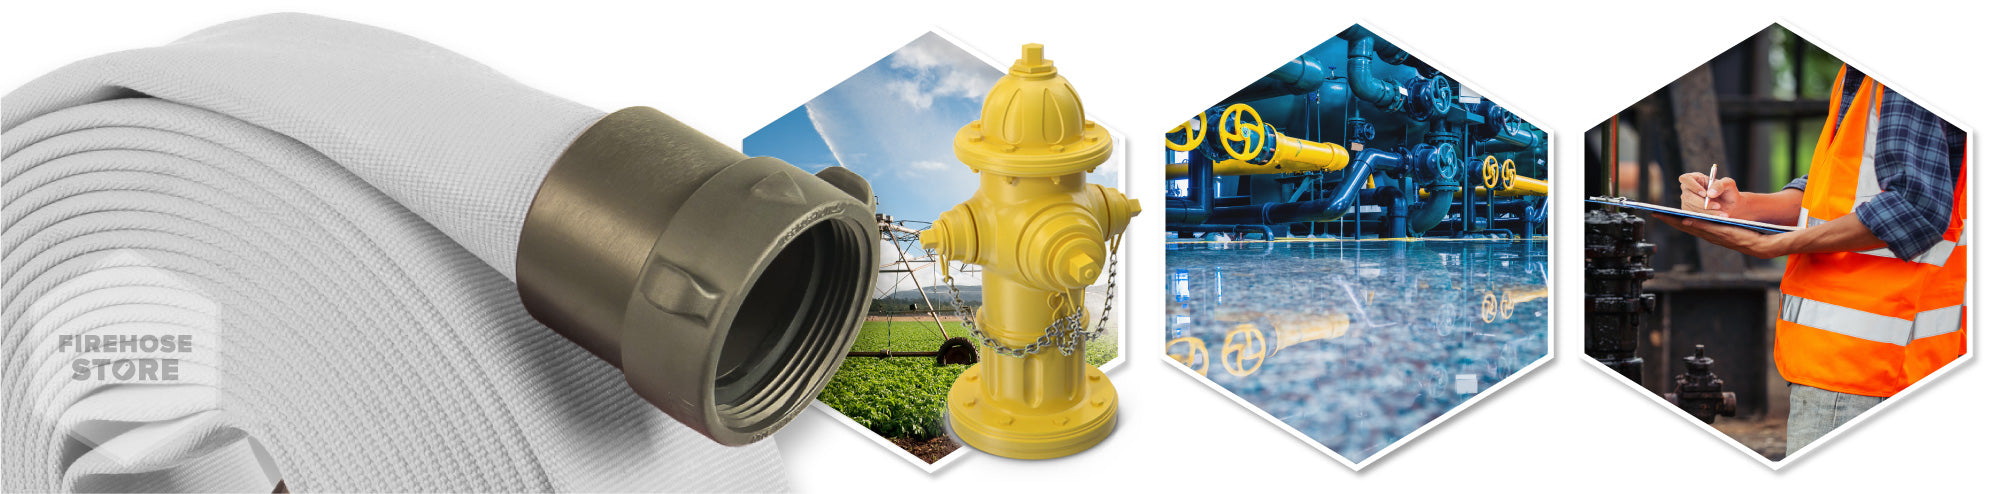 2-1-2 Inch x 25 Feet Fire Hydrant Hose Graphic Overview